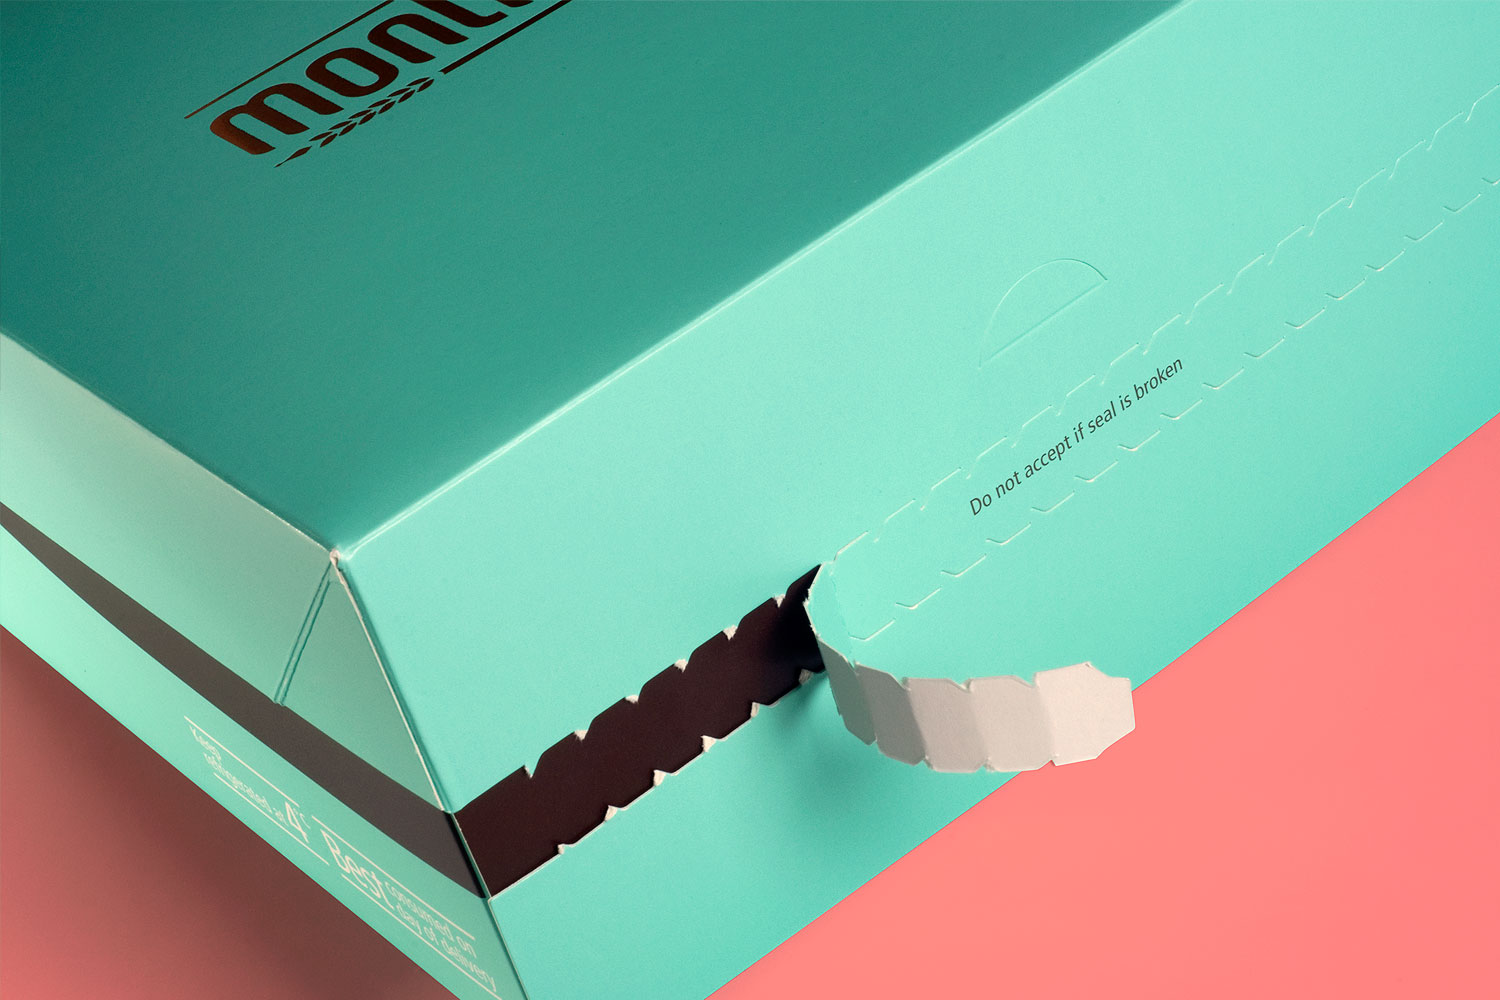 Montreux Café SG branding identity design - Pastry and cake packaging with freshness seal design by Singapore based brand strategy and creative design consultancy, BÜRO UFHO.